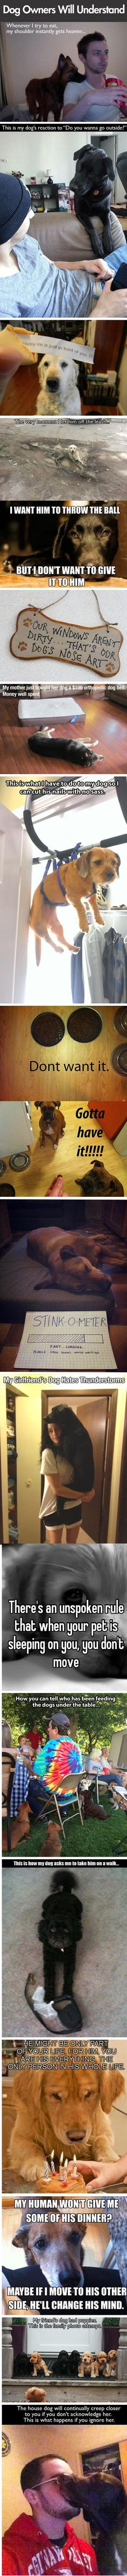 If you own a dog, then you can identify with these... - One Stop Humor: Funny Pictures and Videos!